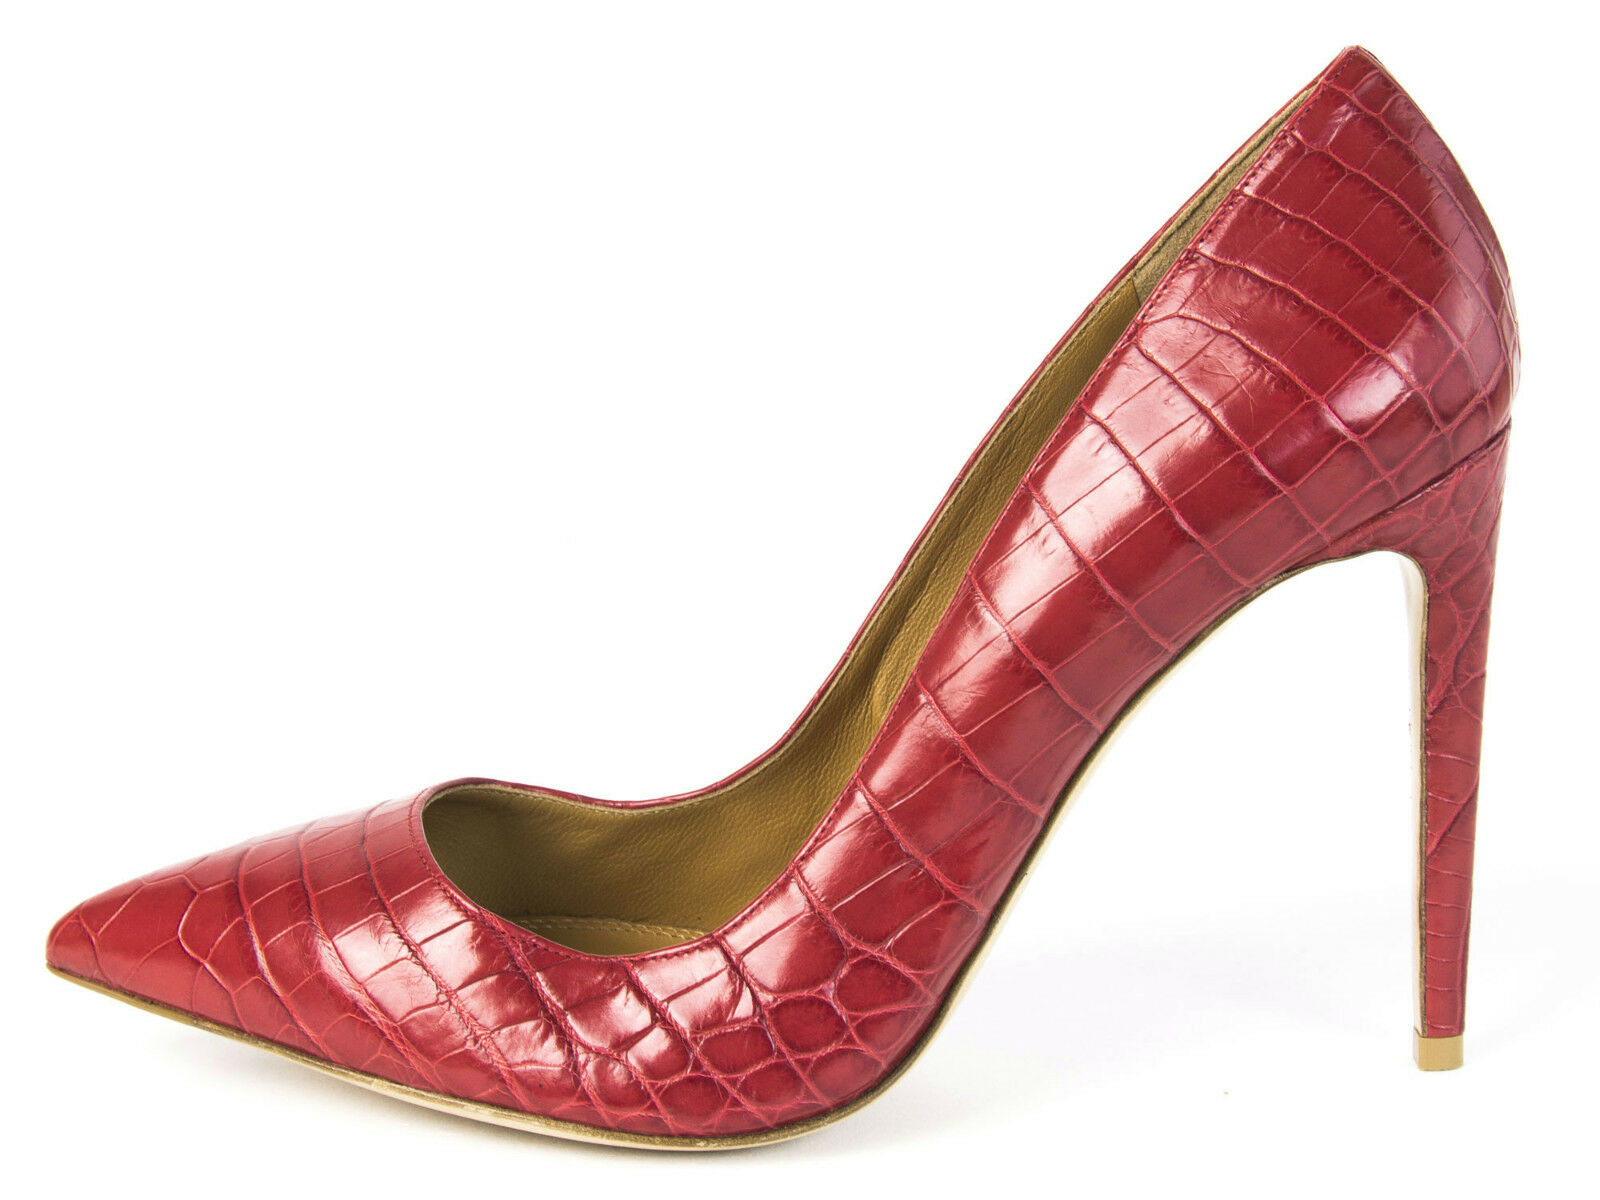 RALPH LAUREN Purple Label Women's Celia Red Alligator Pumps Sz 9.5 NEW